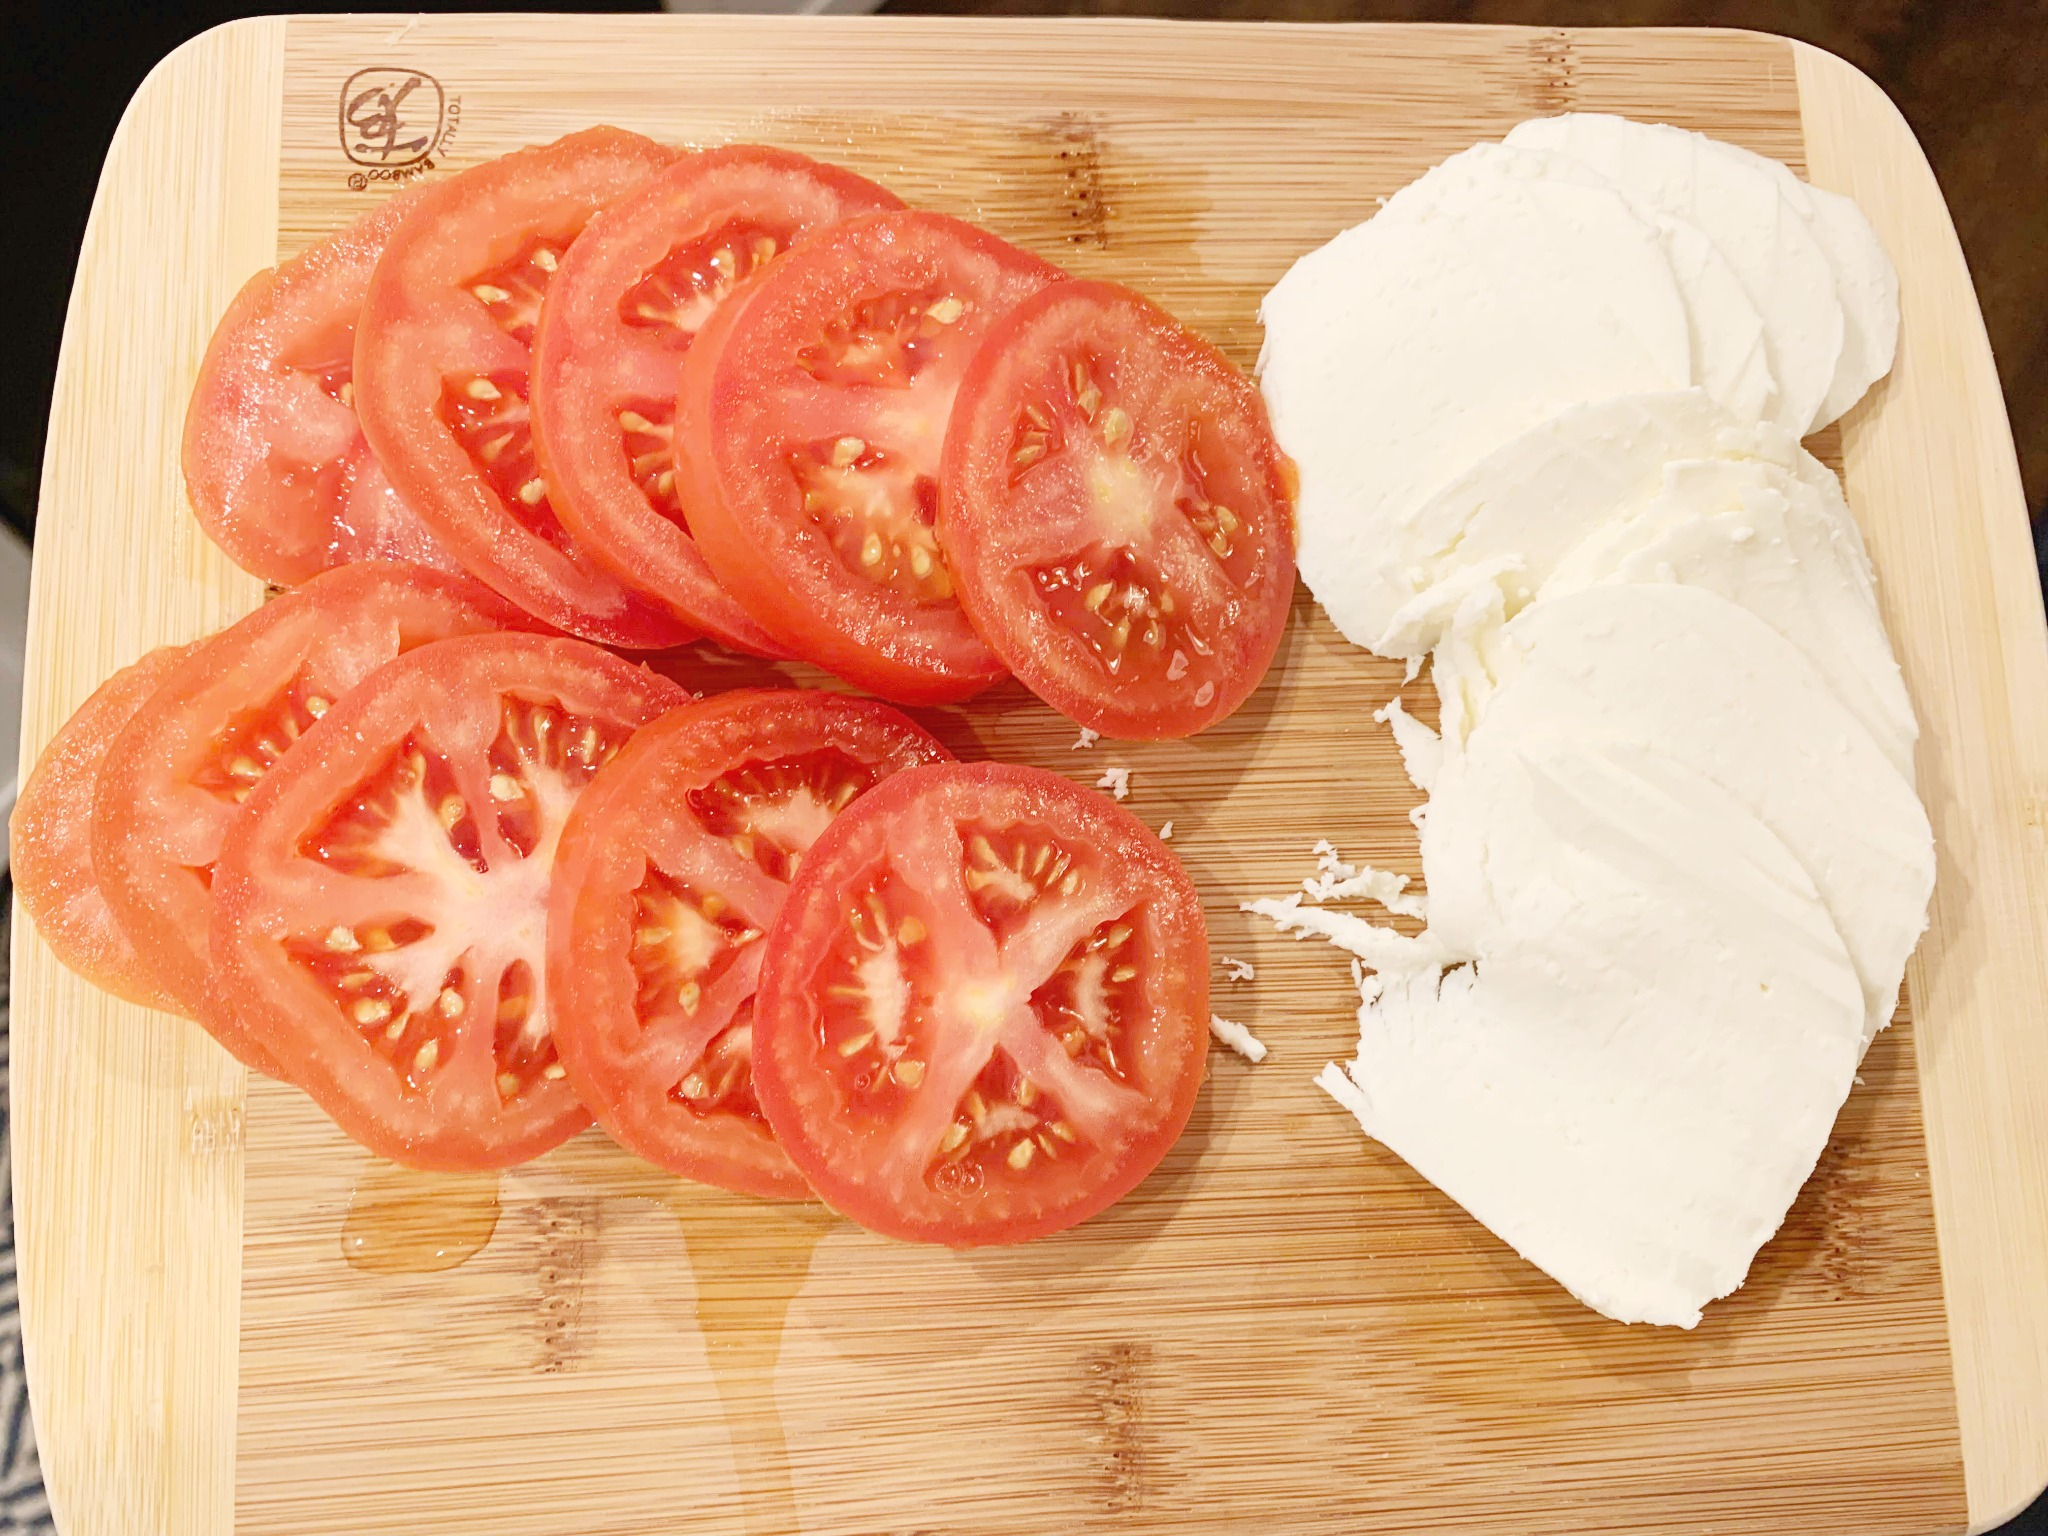 wood cutting board with sliced tomatoes and sliced mozzarella